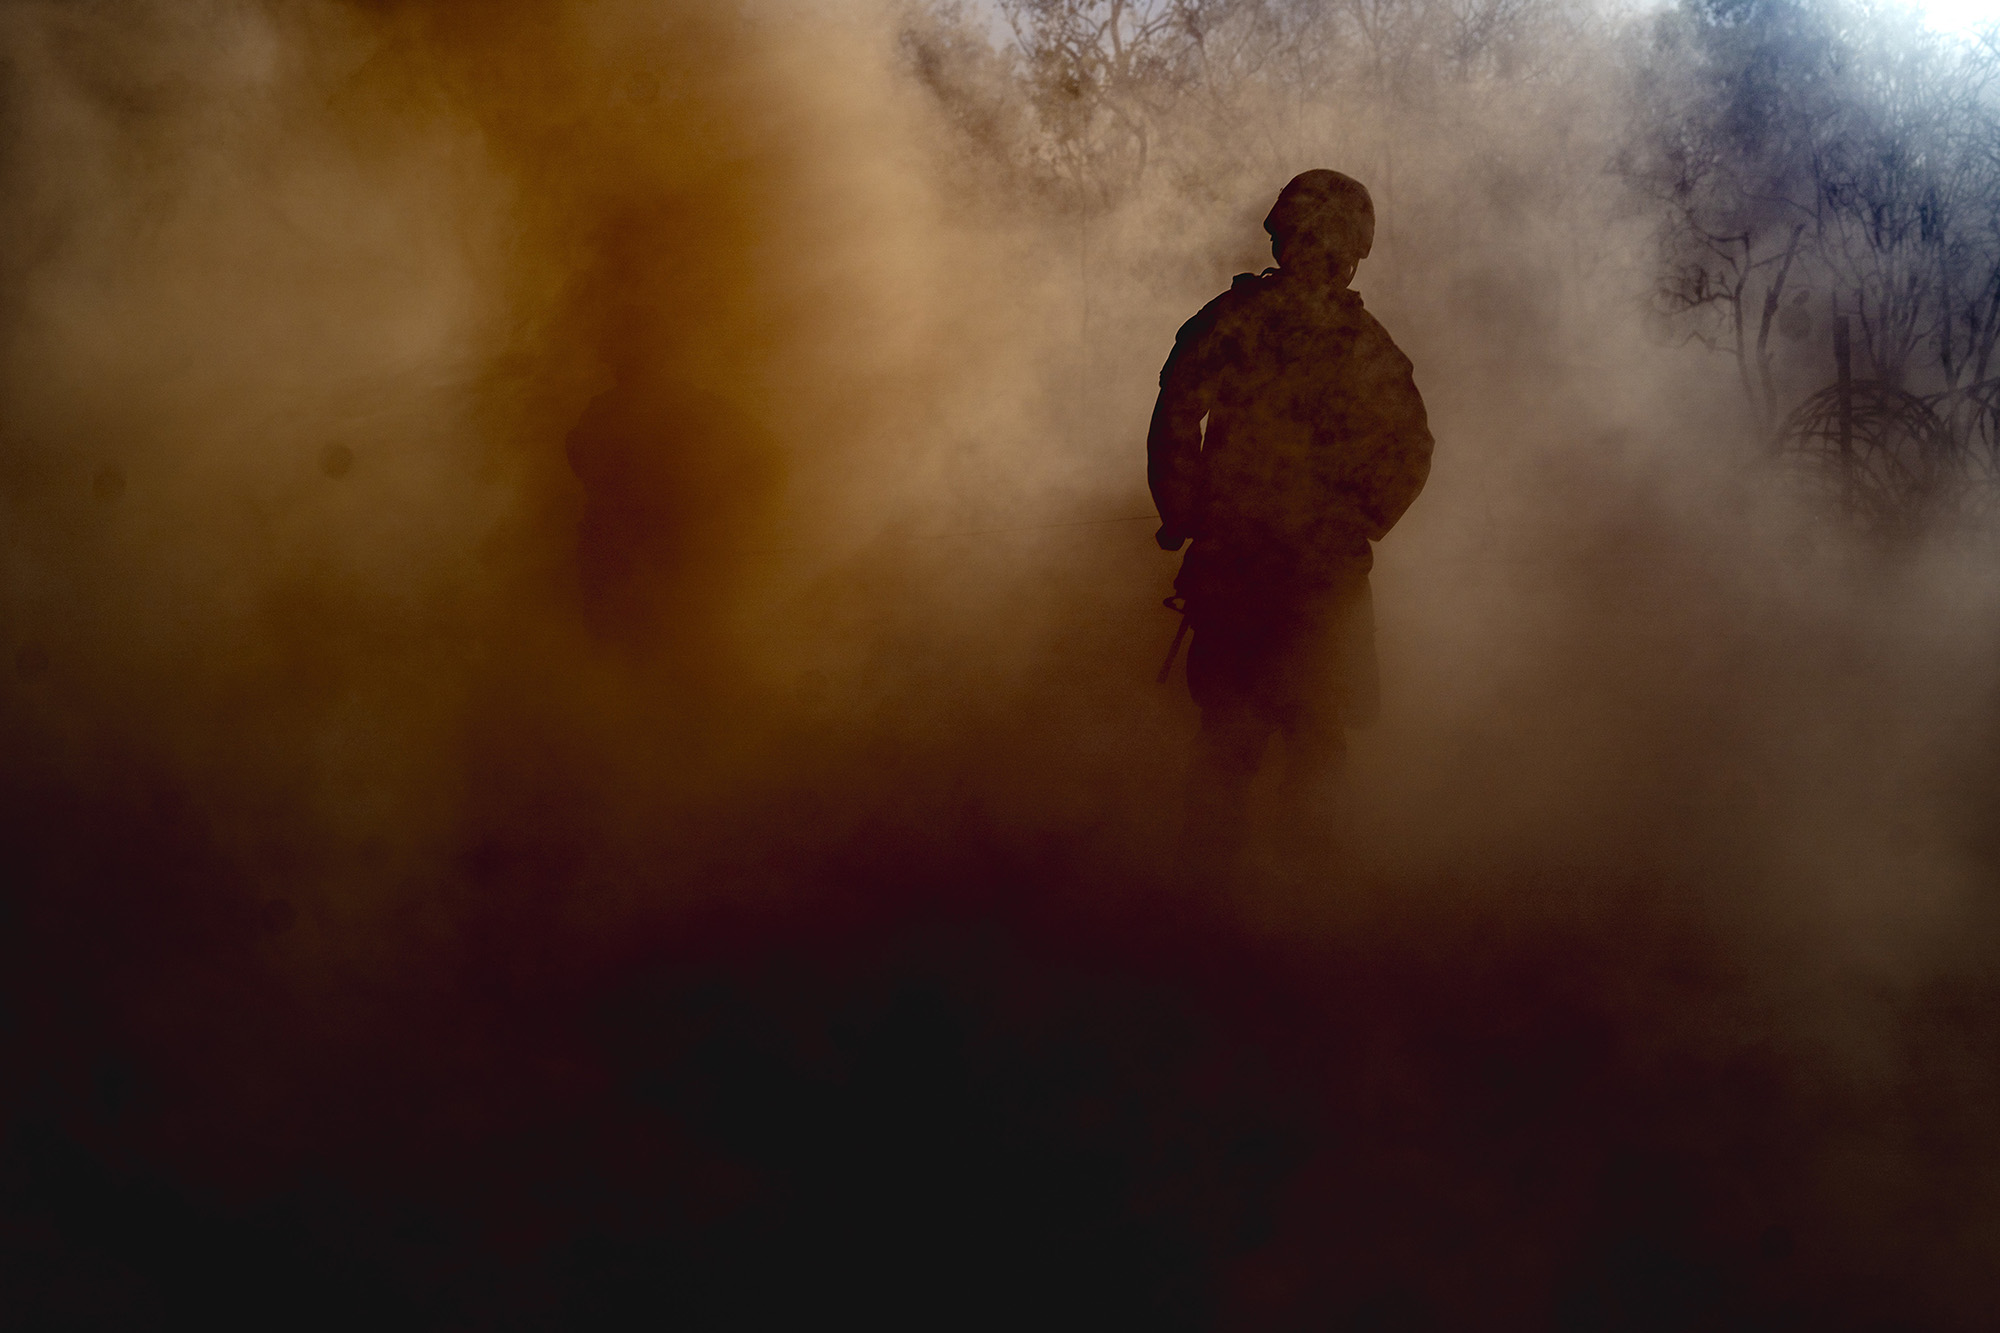 U.S. Marines with Ground Combat Element, Marine Rotational Force Darwin, conduct offensive and defensive operations during Exercise Koolendong at Mount Bundey Training Area, Northern Territory, Australia, Sept. 5, 2020. (Cpl. Lydia Gordon/Marine Corps)